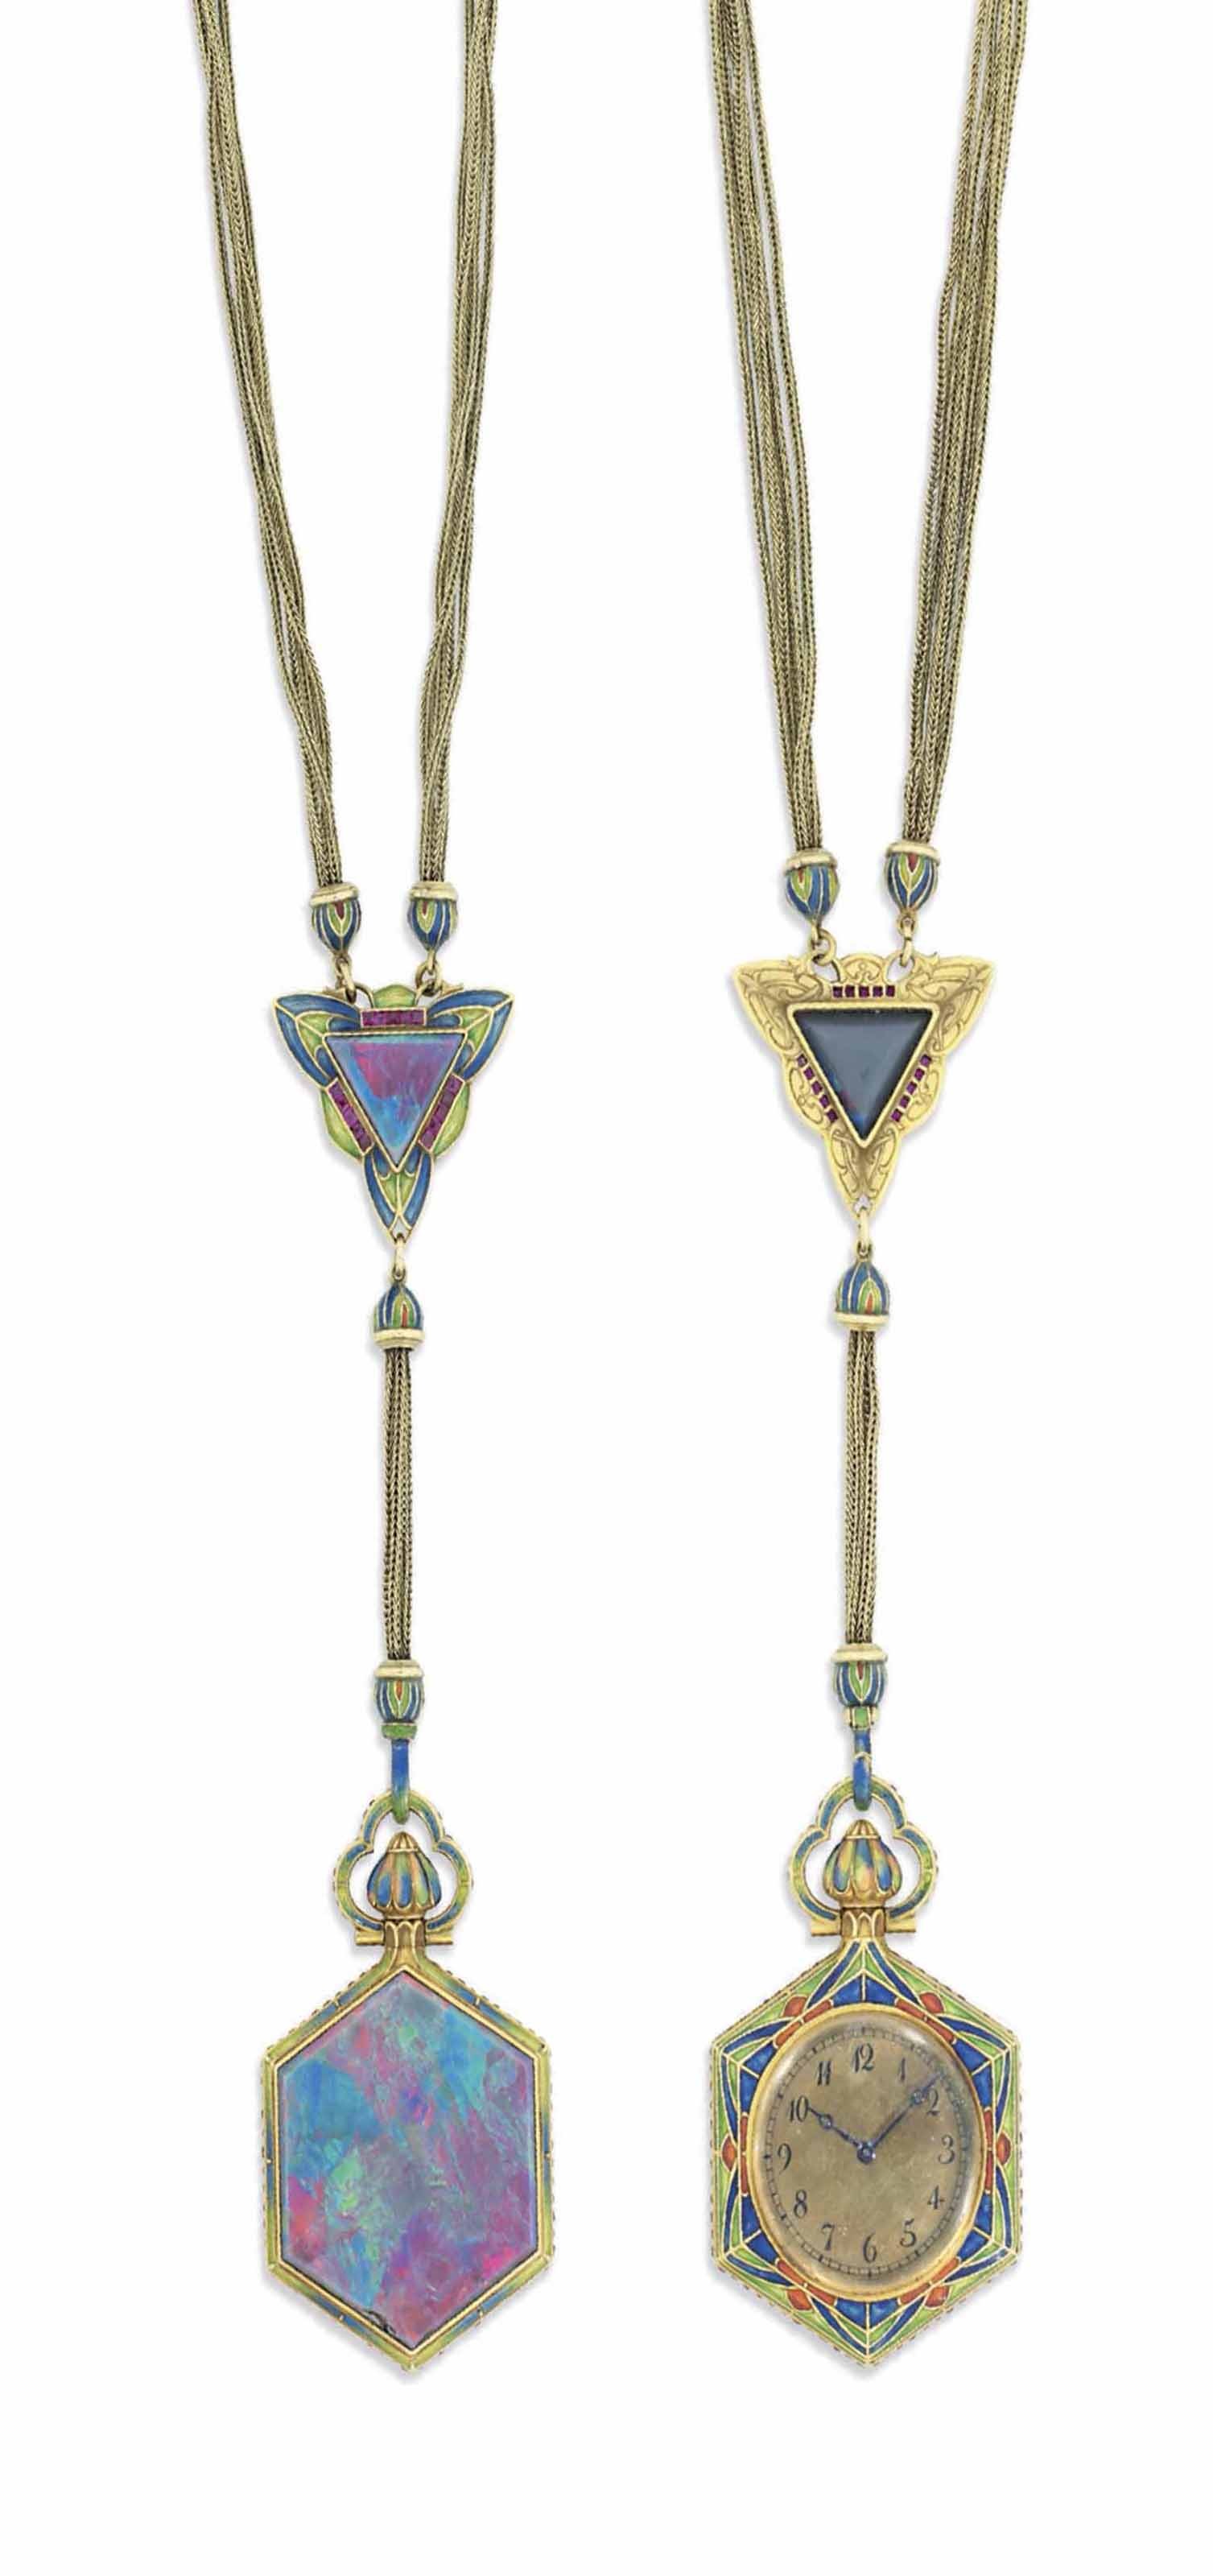 AN EARLY 20TH CENTURY BLACK OPAL WATCH PENDANT, BY MARCUS & CO